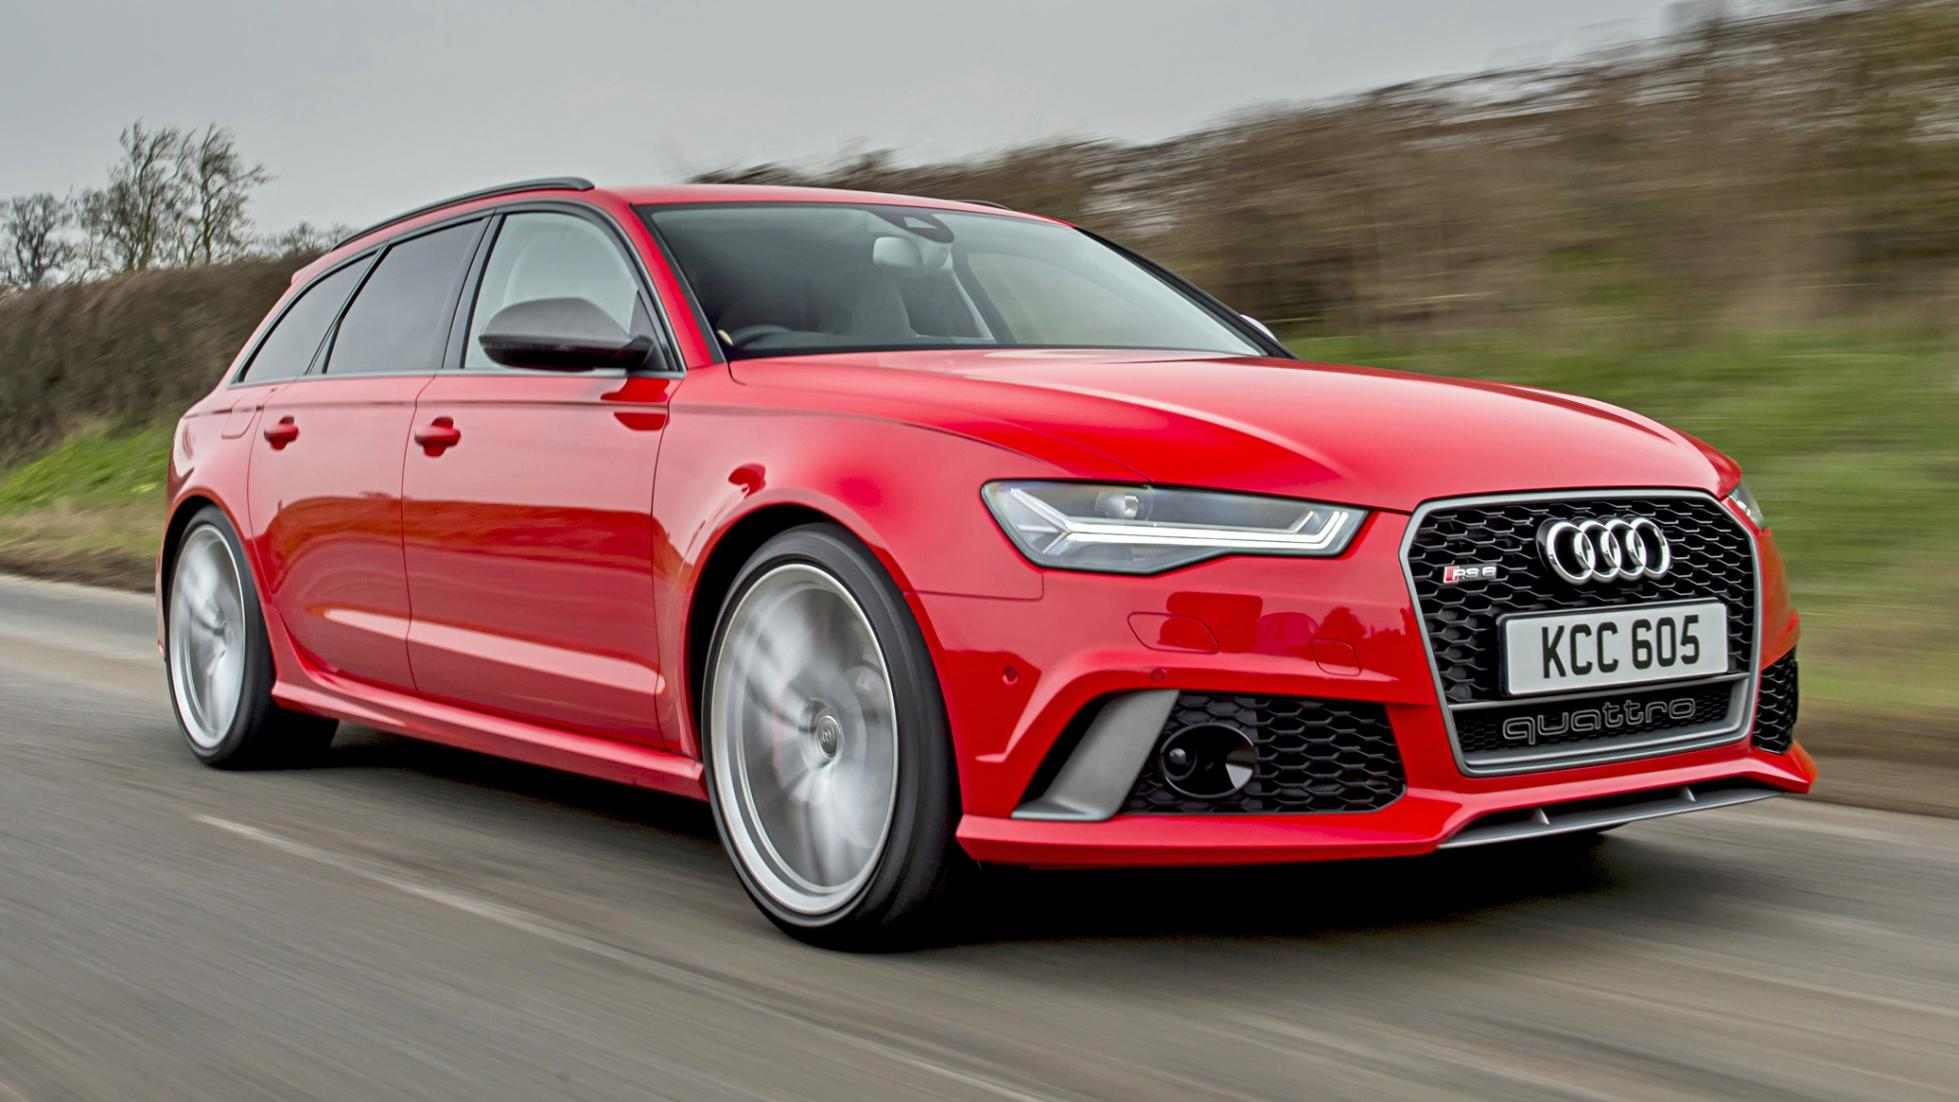 2017 Audi RS6 Review | Top Gear